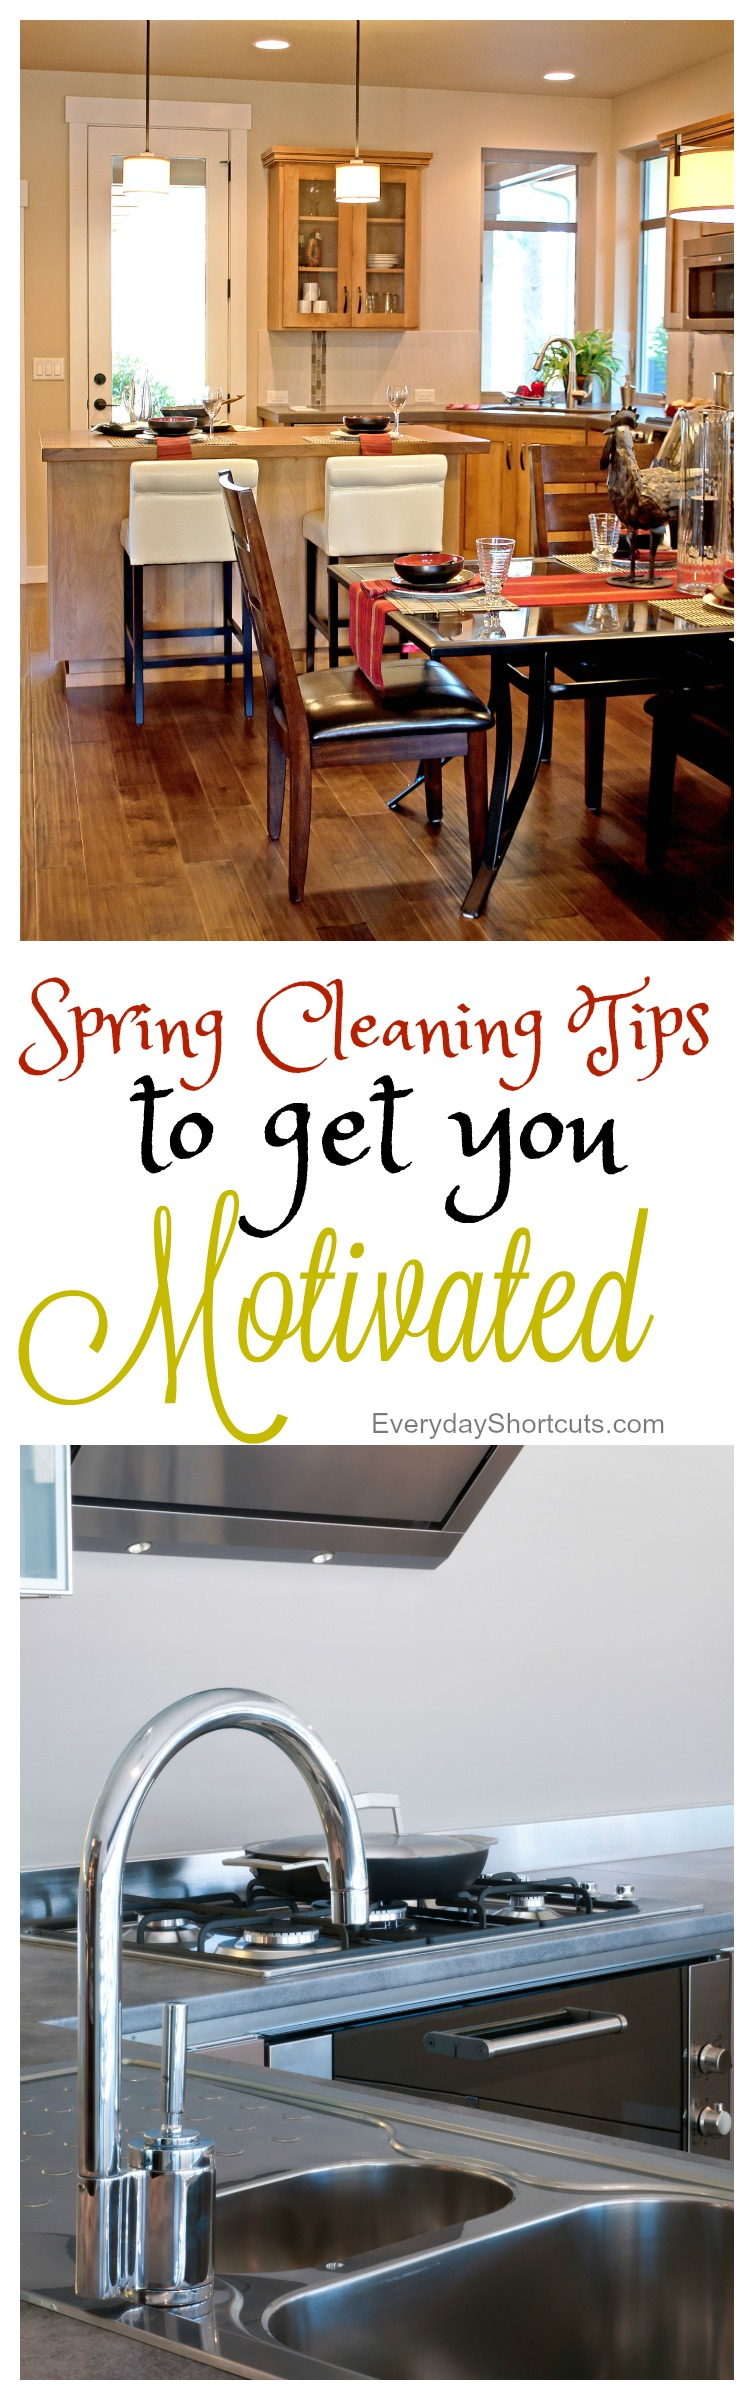 Spring Cleaning Tips to Get you Motivated